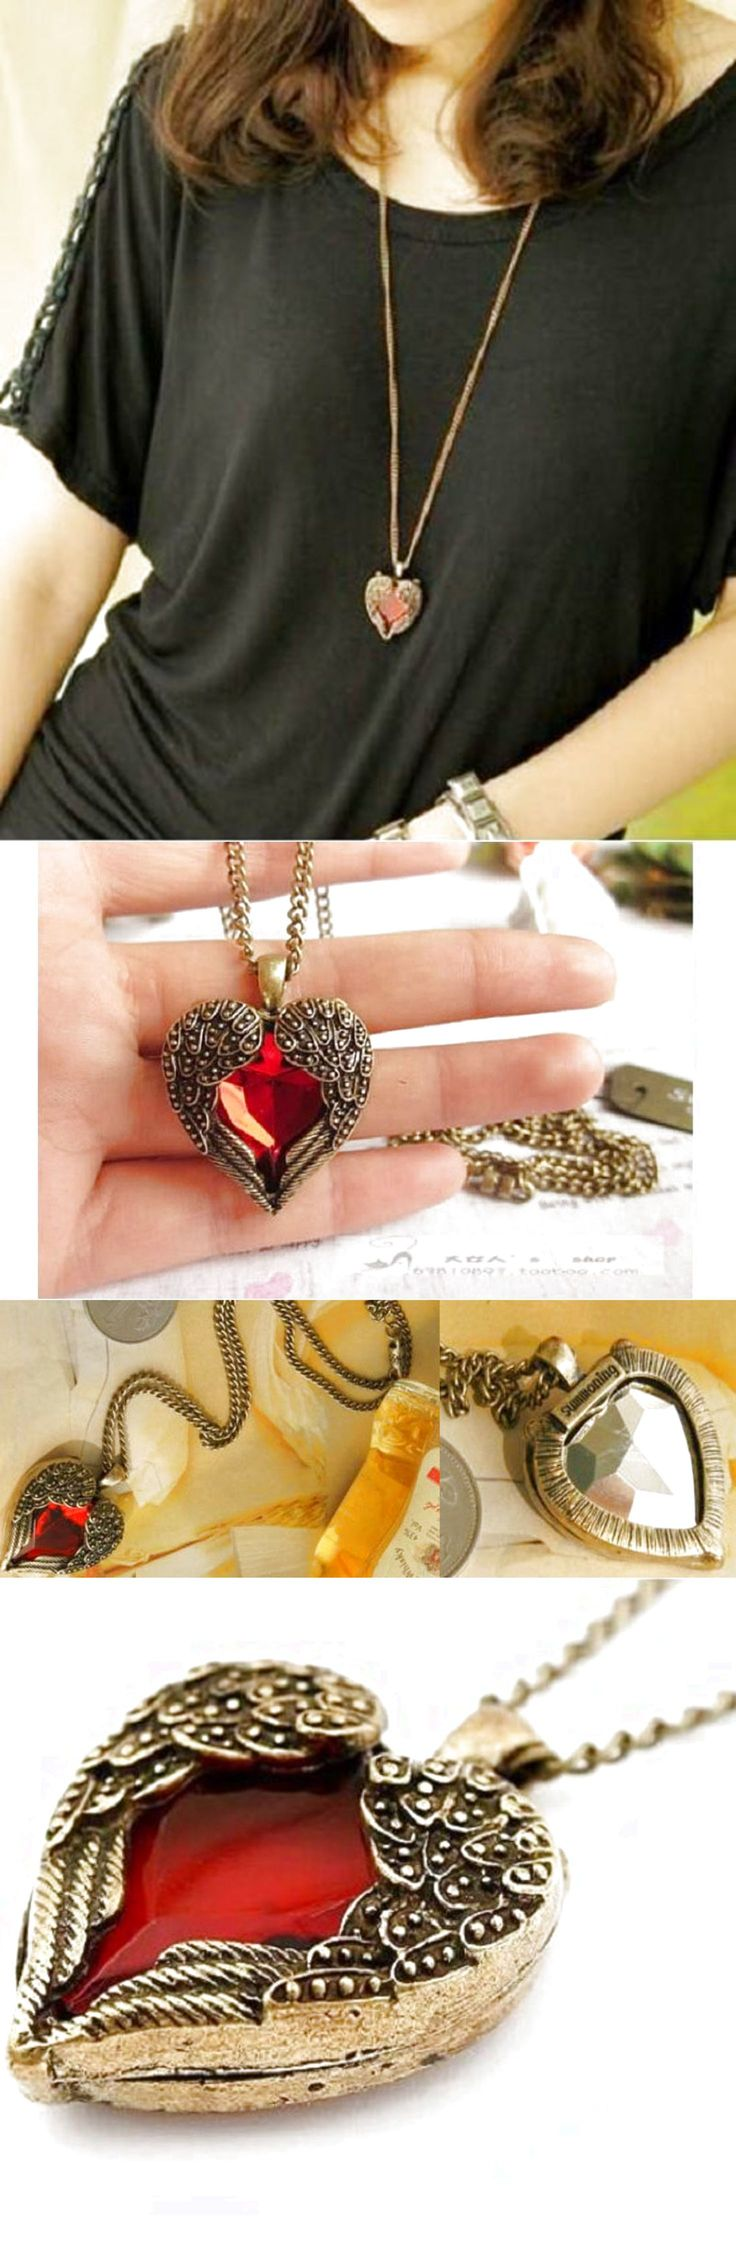 Fashion Women Retro Vintage Heart Crystal Pendant Long Chain Necklace Jewelry $0.99